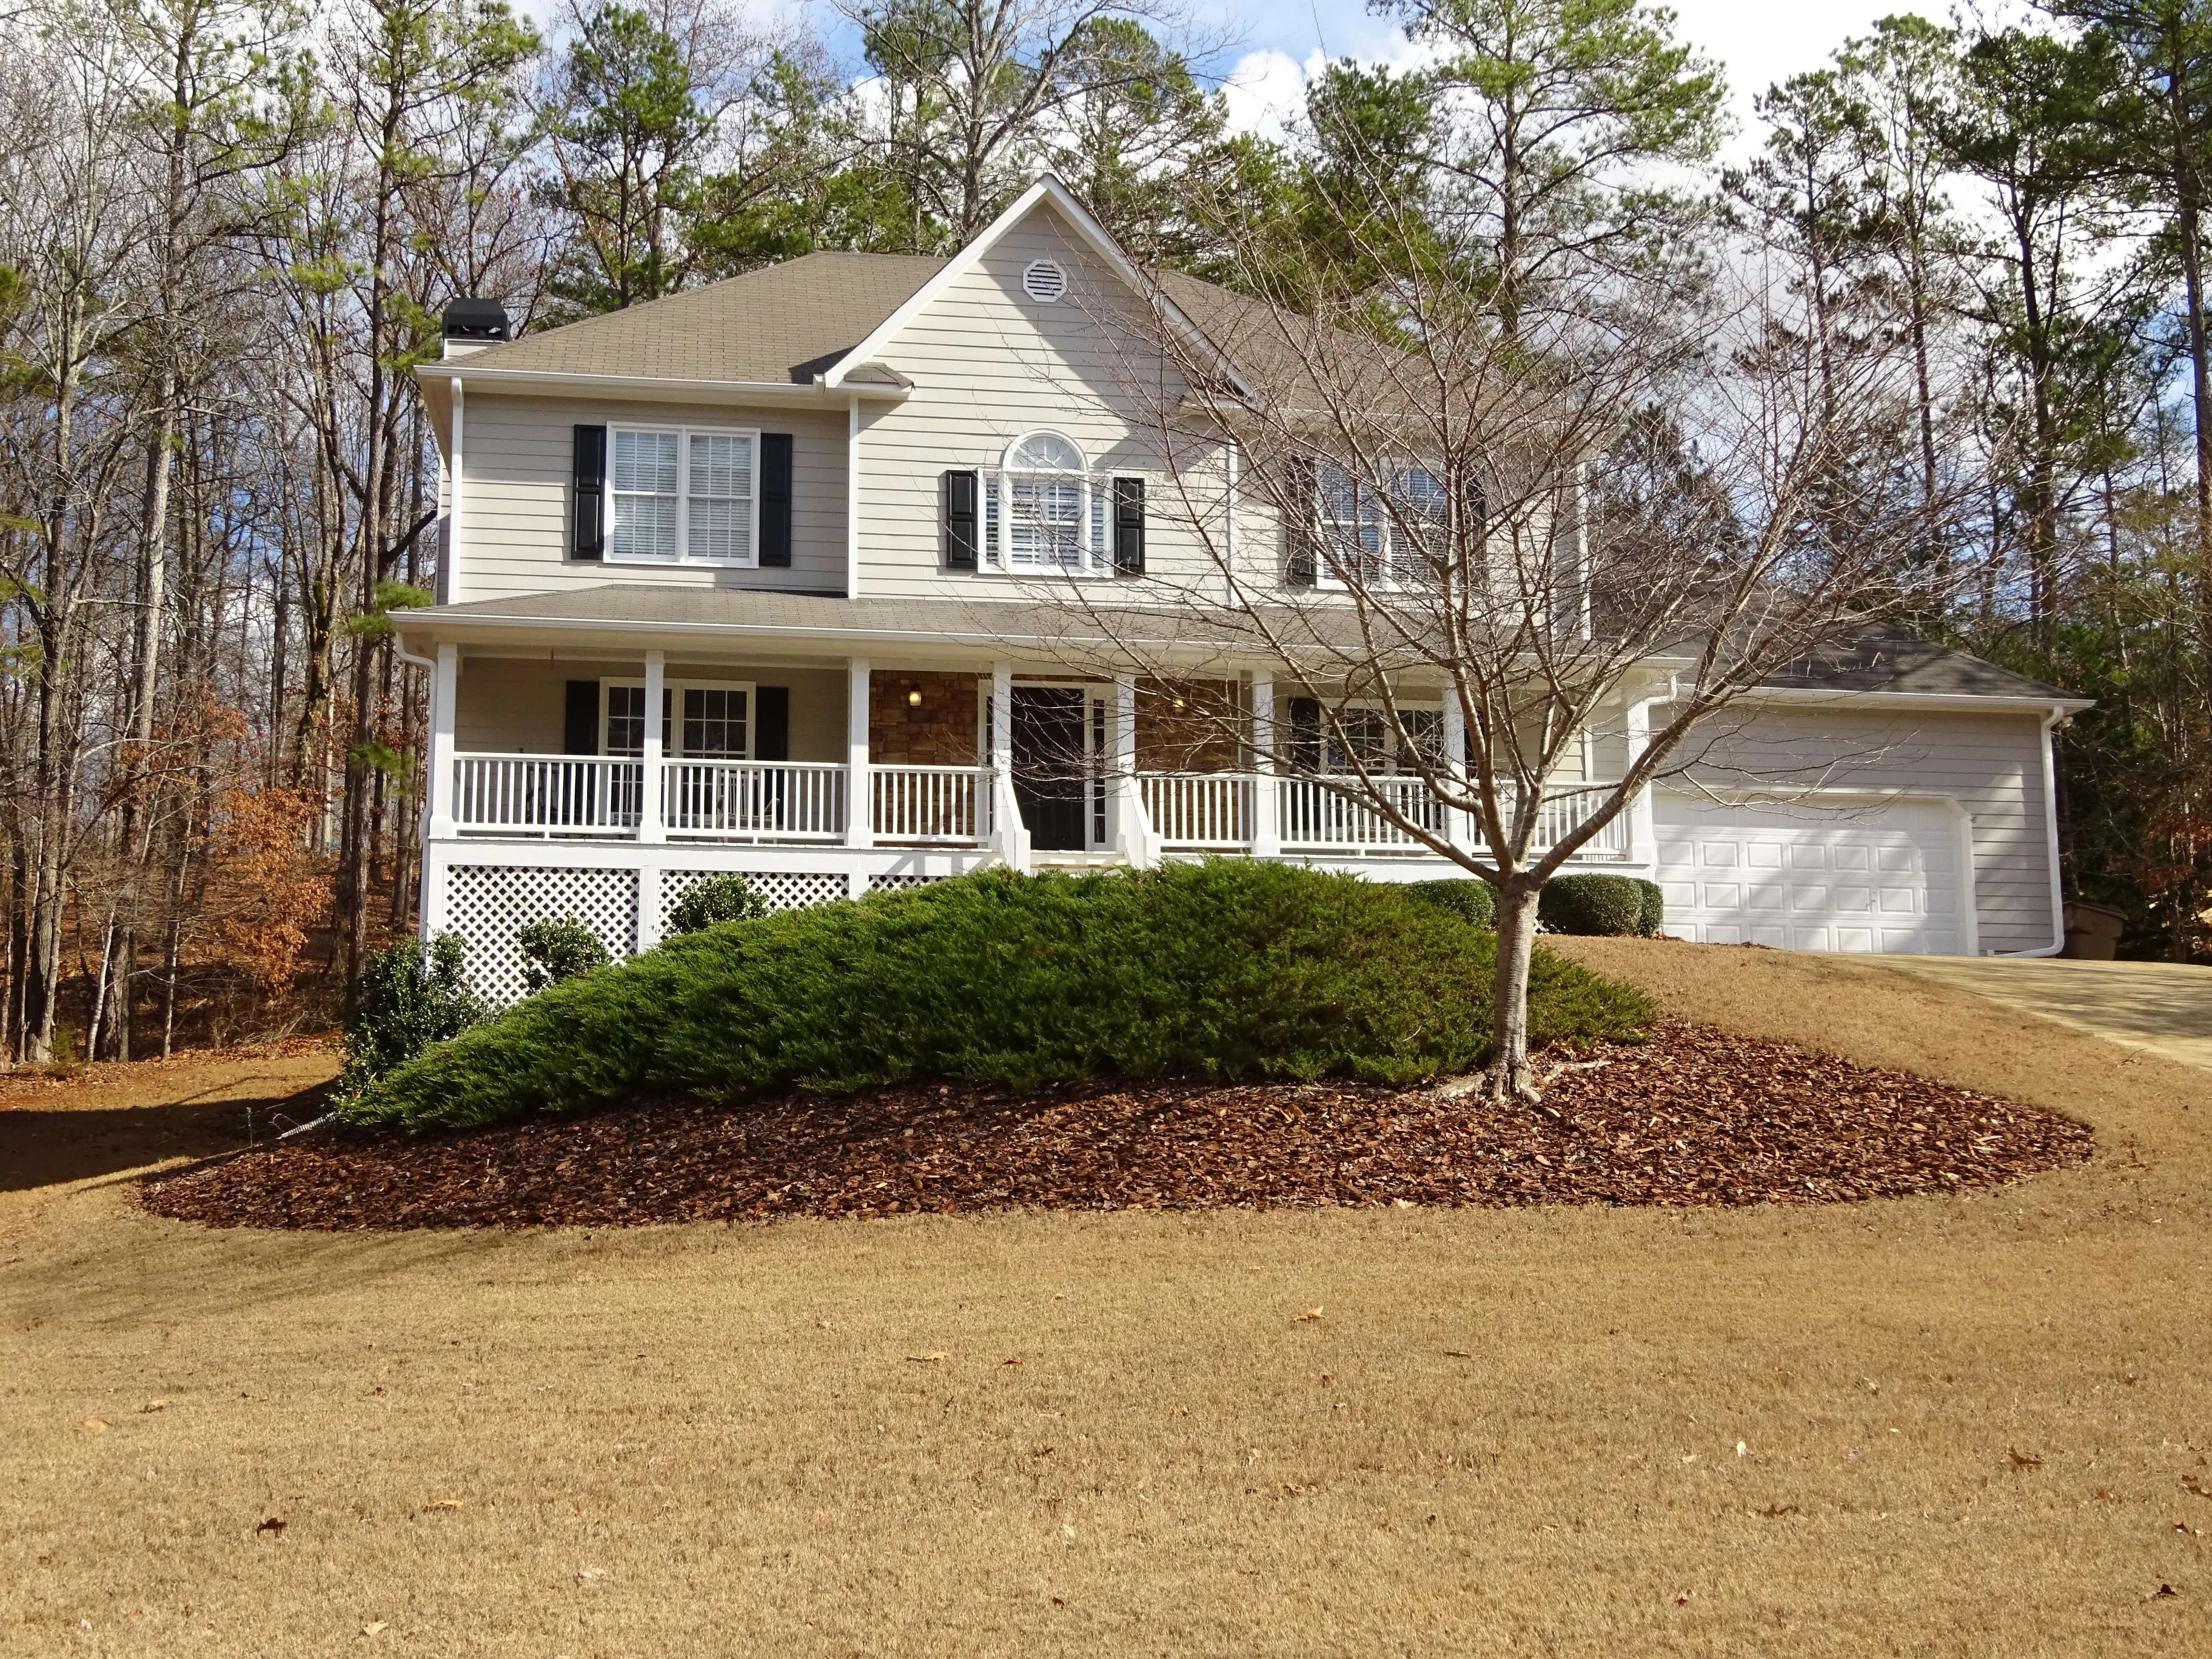 509 wisteria dr home for sale woodstock ga